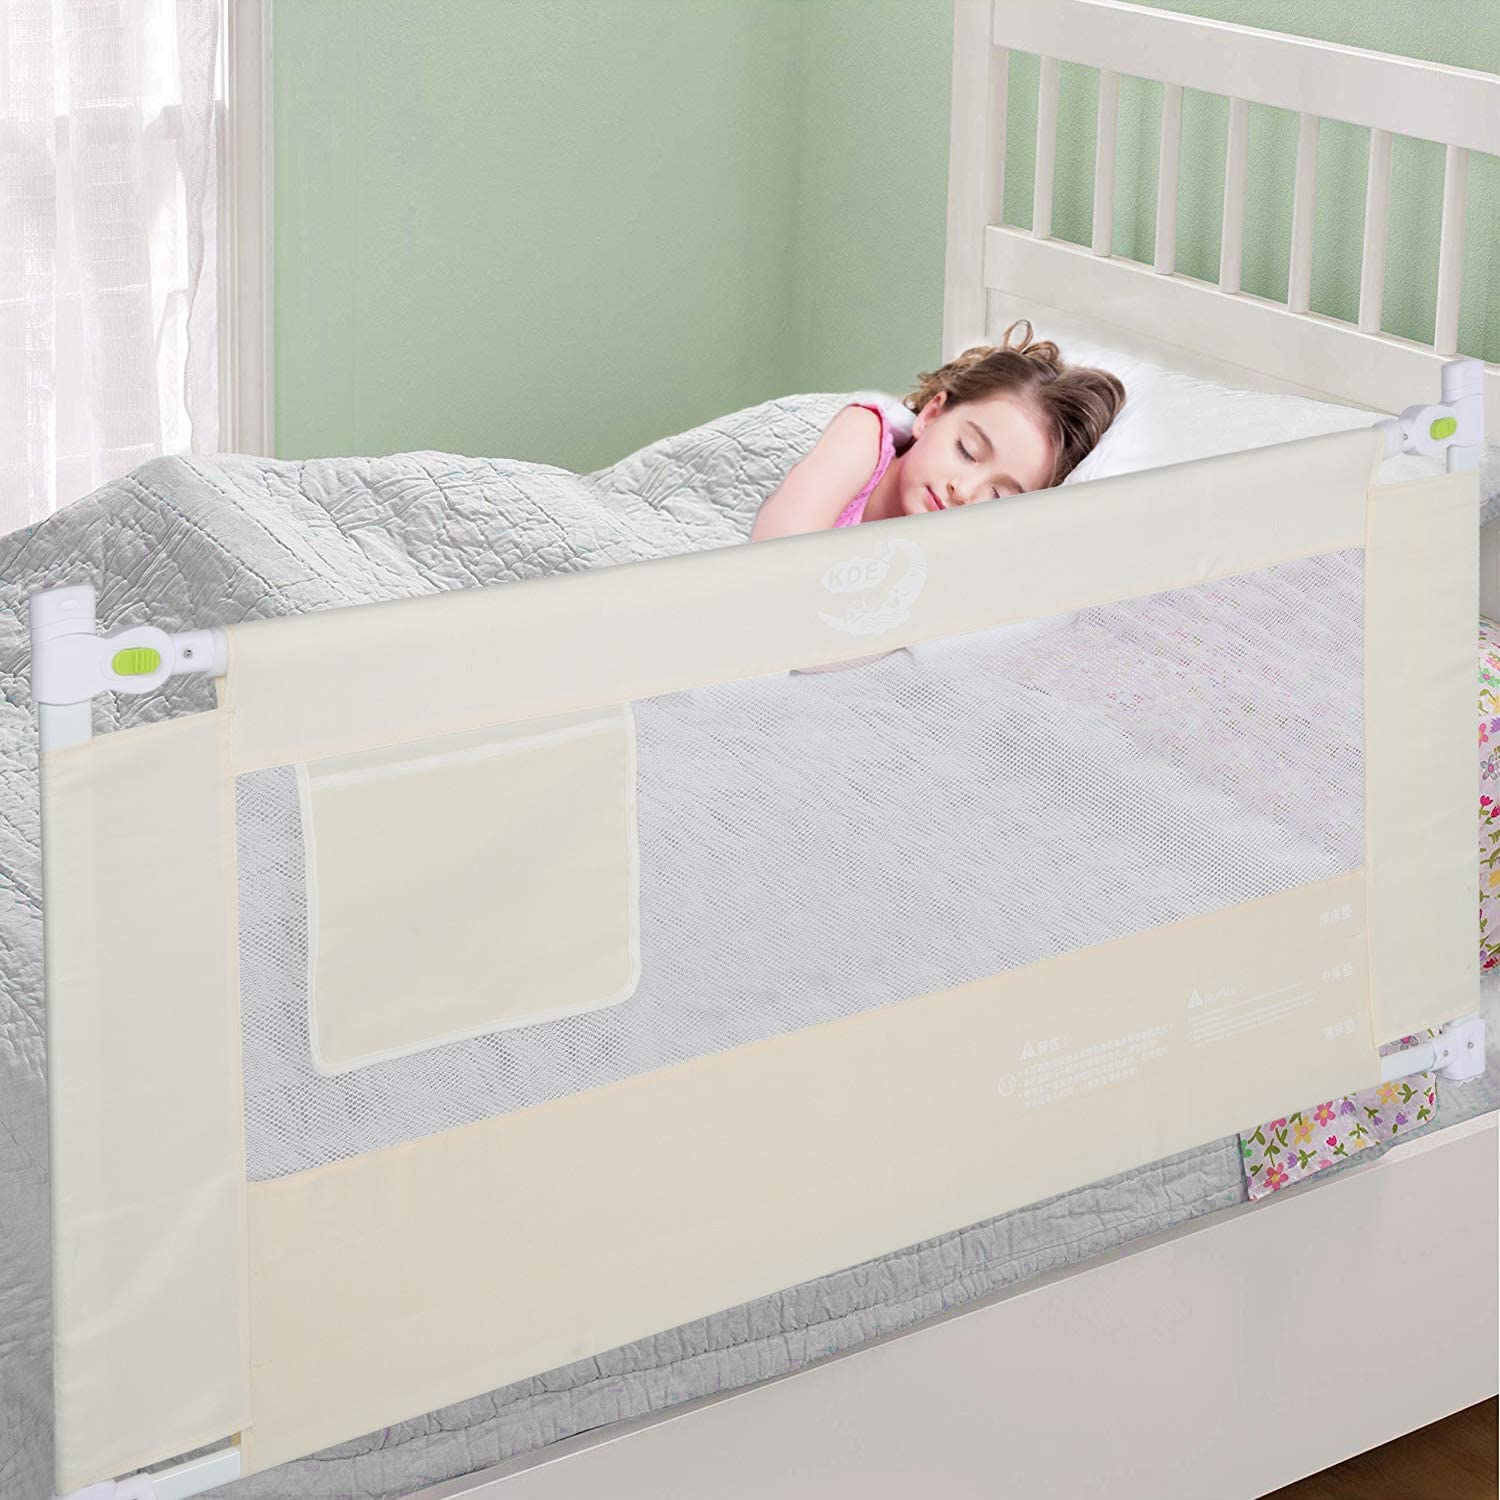 King Bed 1 Piece Bed Rail for Toddler Queen Size Bed Foldable Baby Kids Safety Bedrail 59 Extra Long Vertical Down Bed Guardrail for Twin Bed